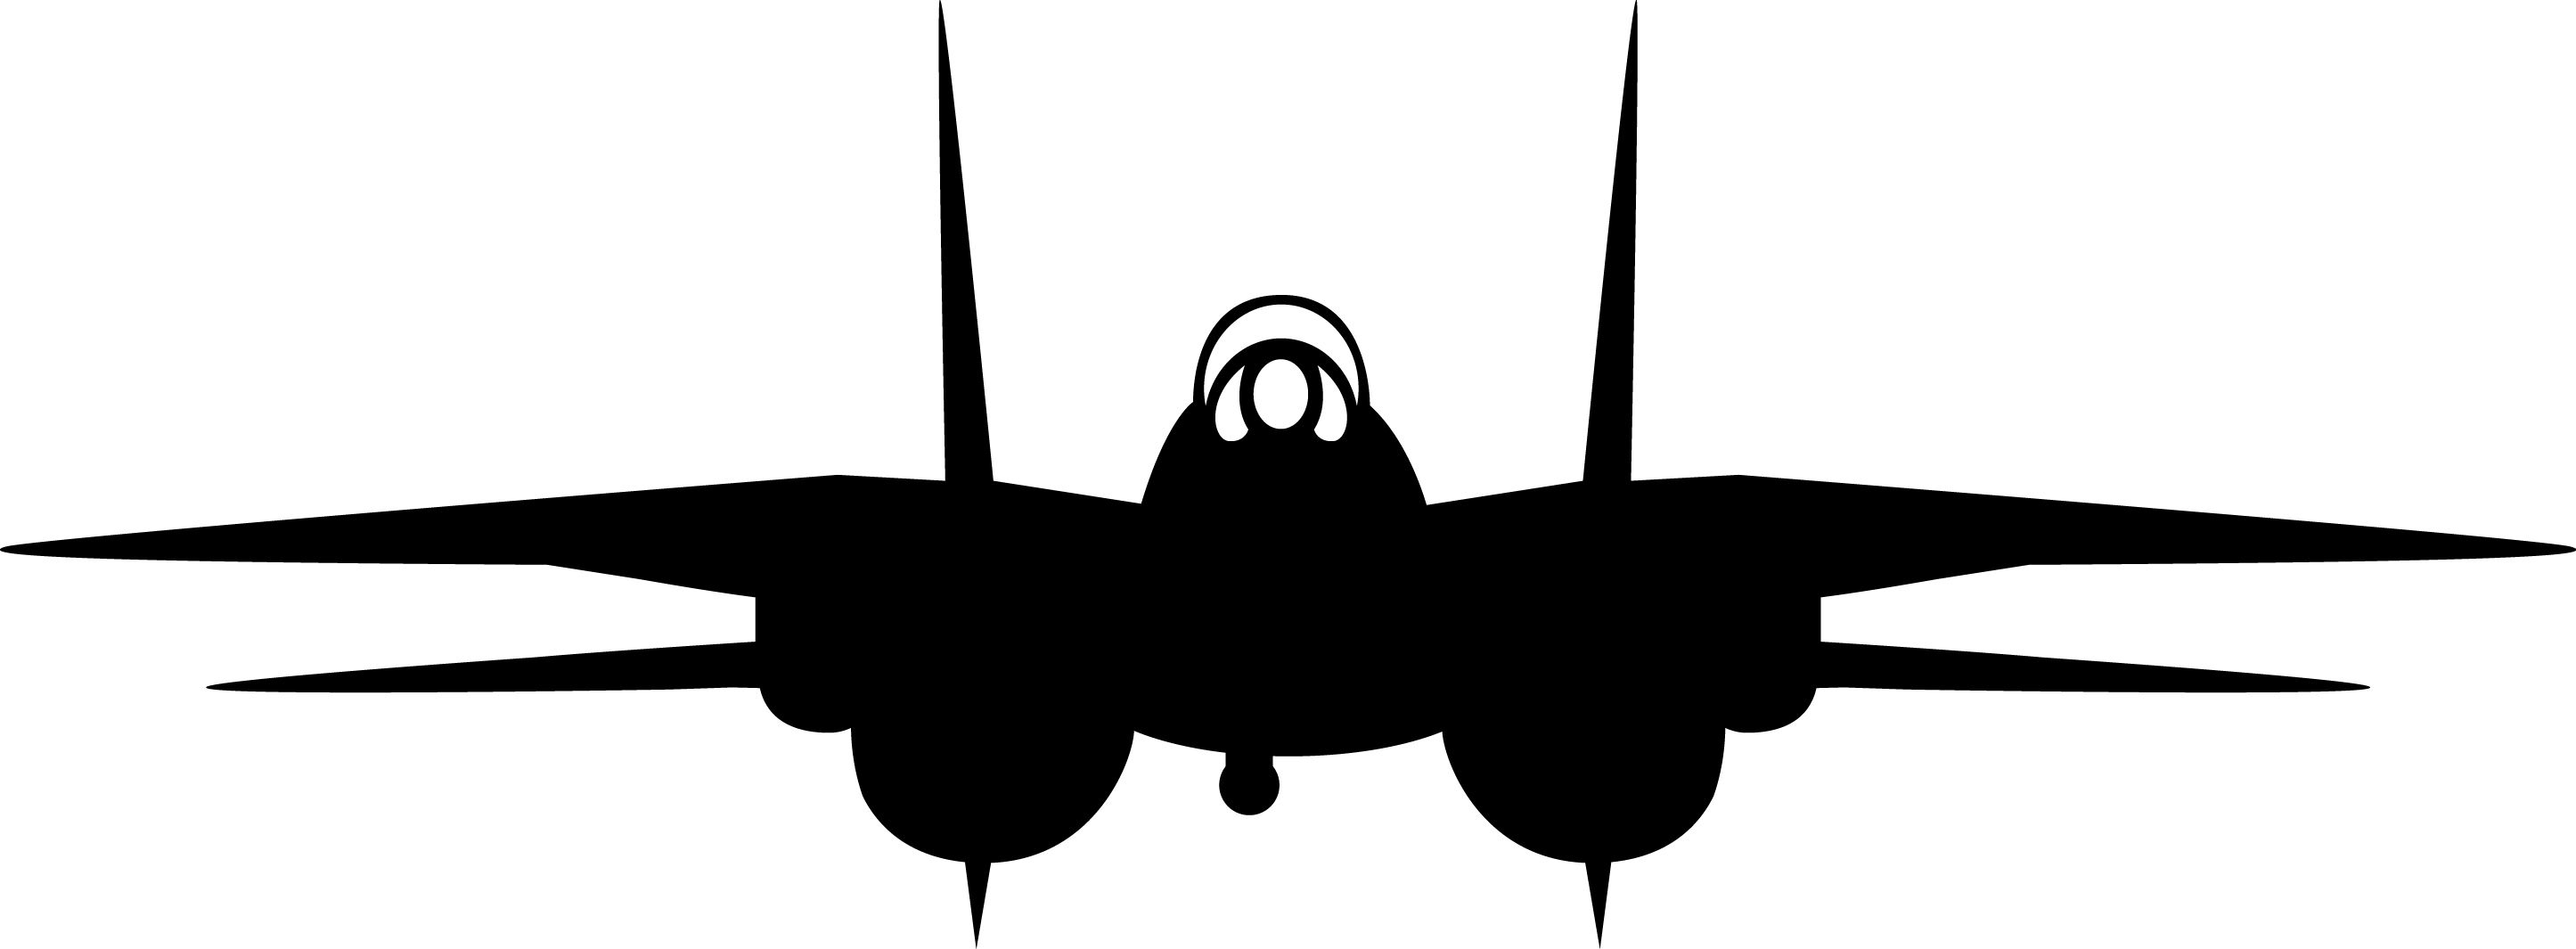 F 14 Tomcat Invertable Silhouette F 14 Decal